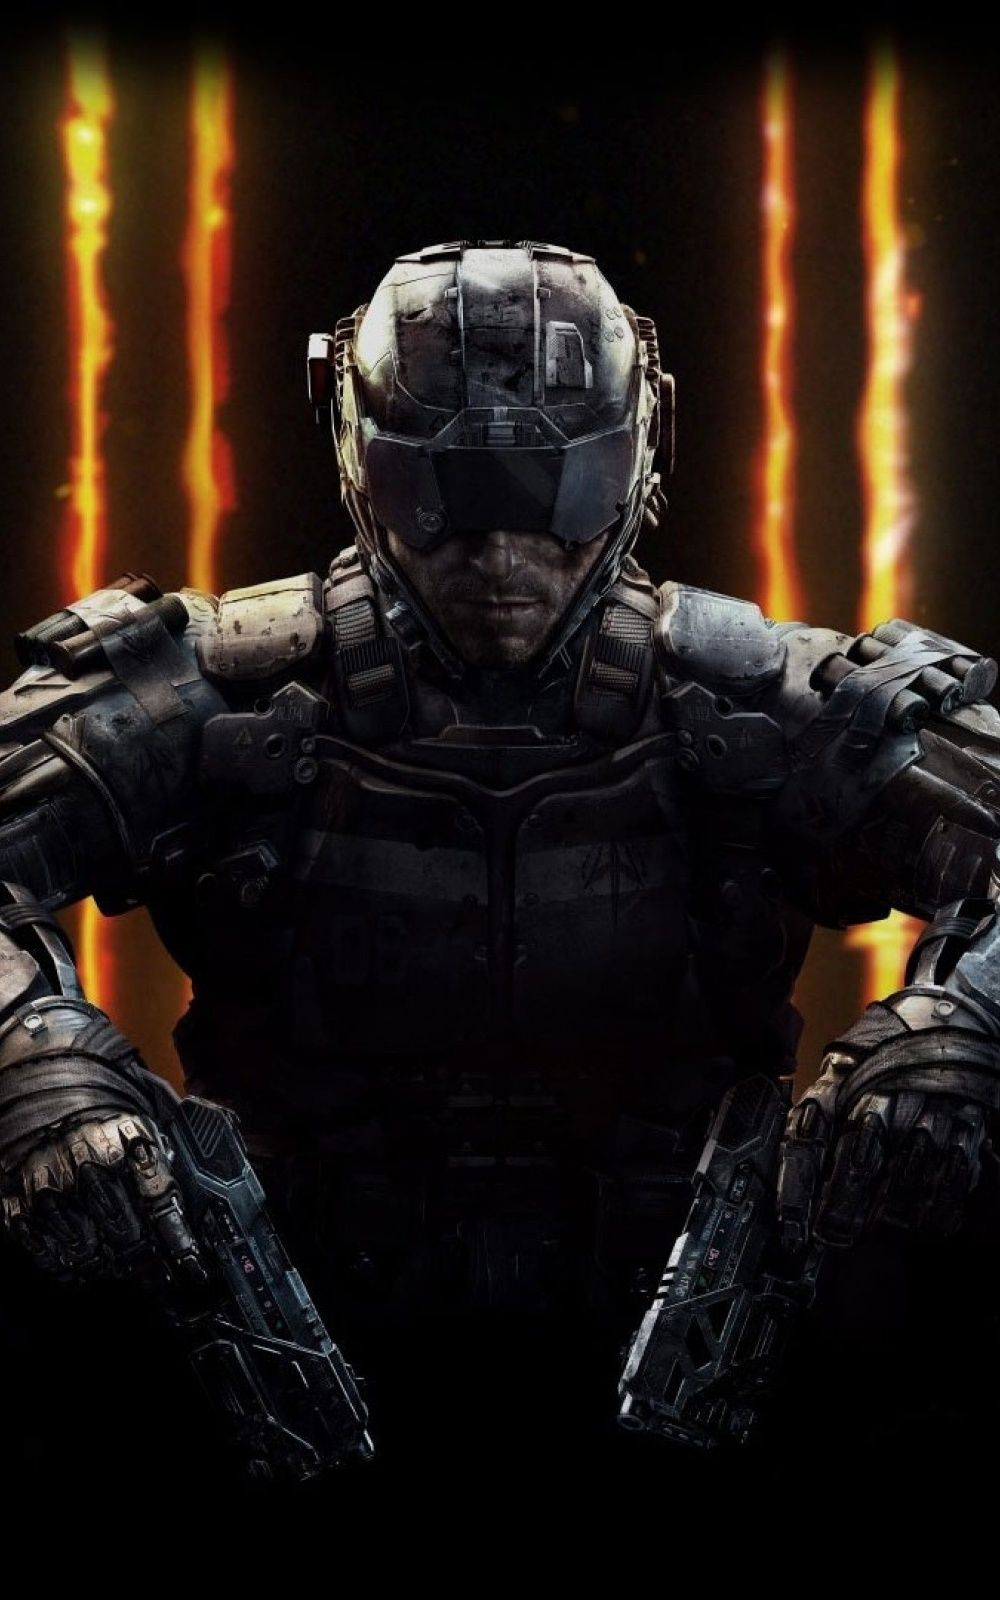 Call of Duty Black Ops iPhone Wallpapers - Top Free Call of